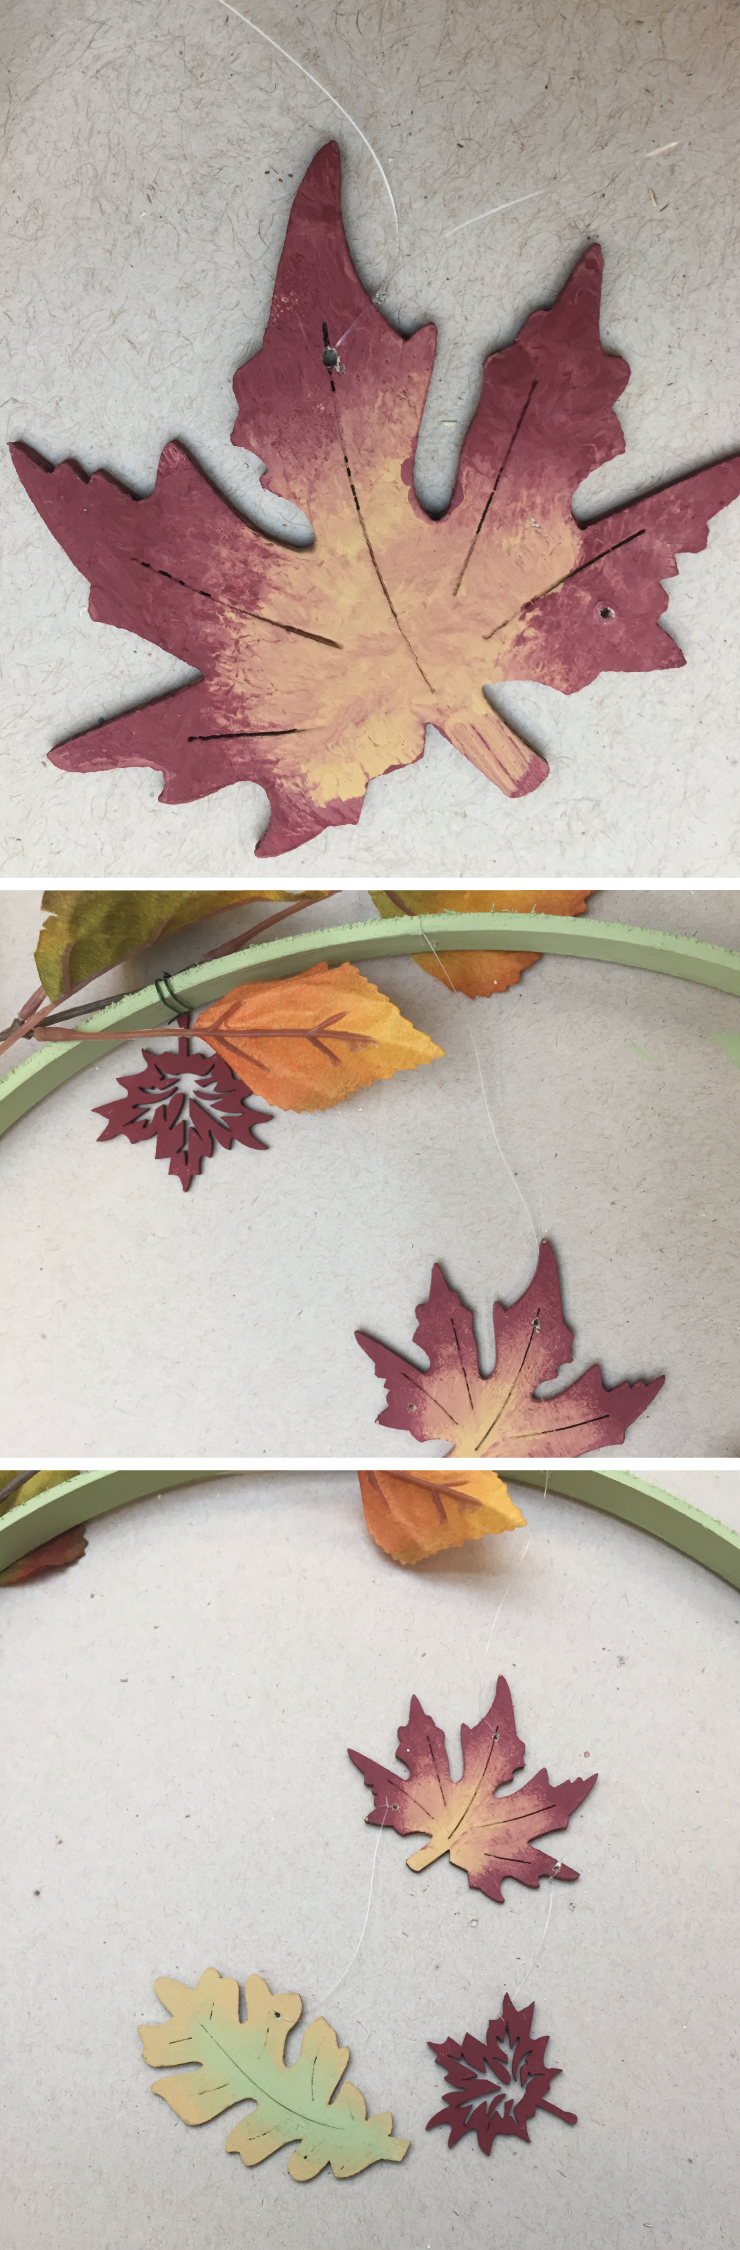 Three images showing: First image - the leaf with a whole in it.  Second image - Adding string to the leaf and adding it to the hoop. Third image: Adding string to the rest of the leaves.